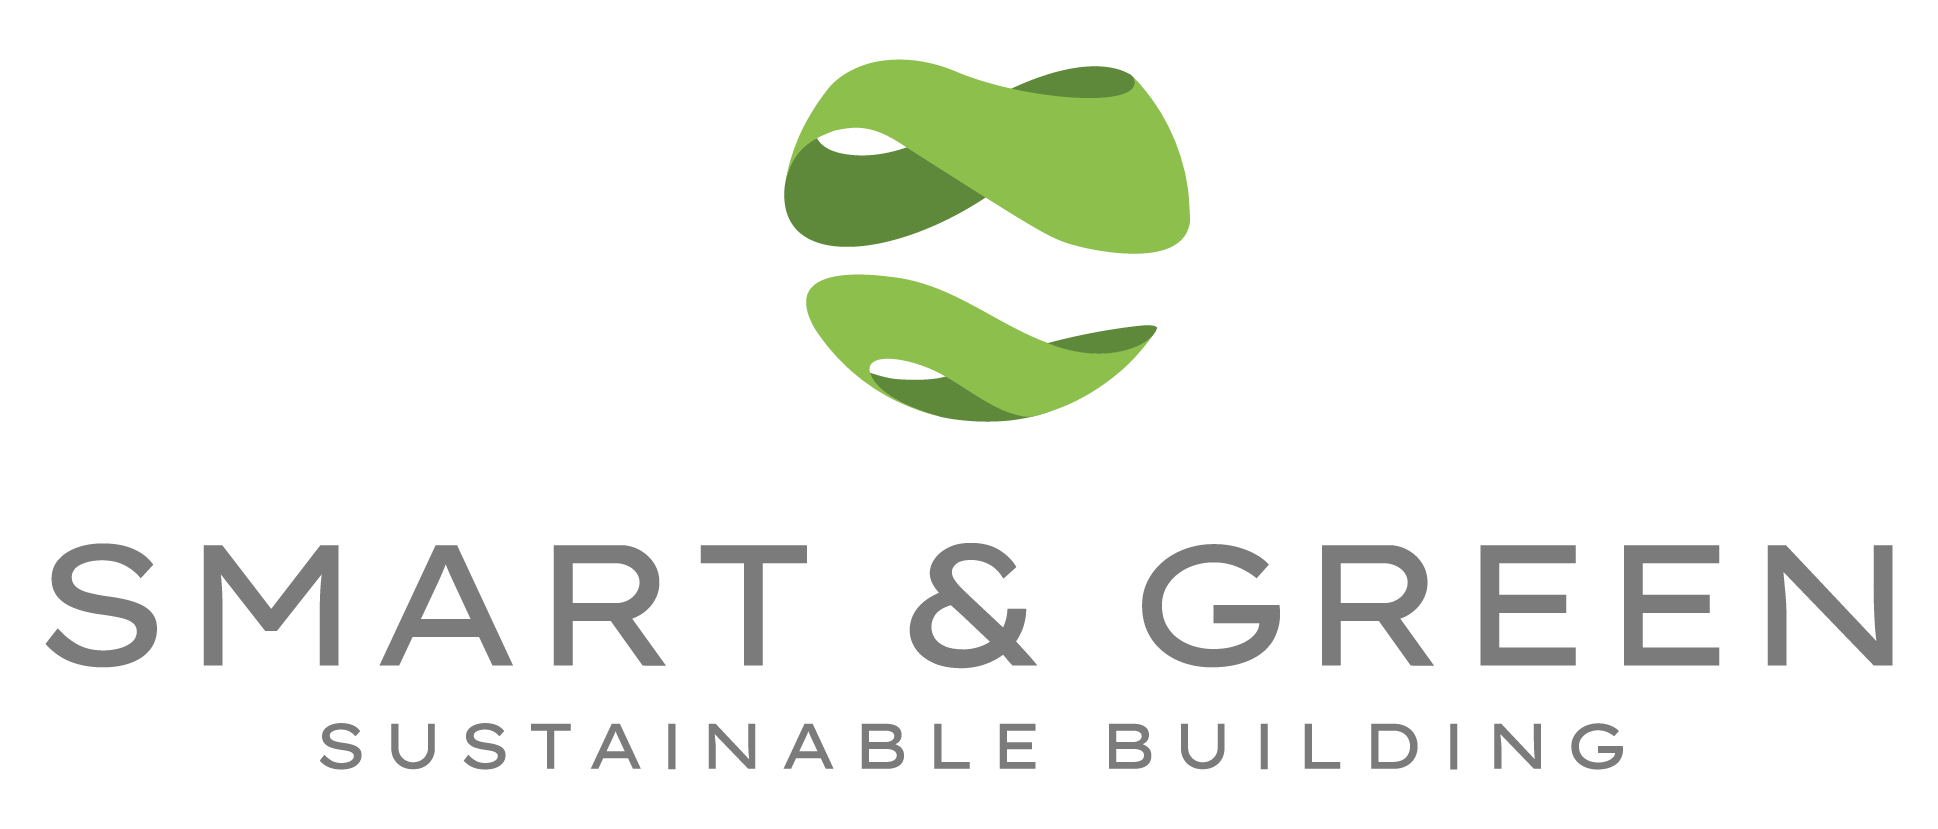 ConRob is Member of Smart&Green